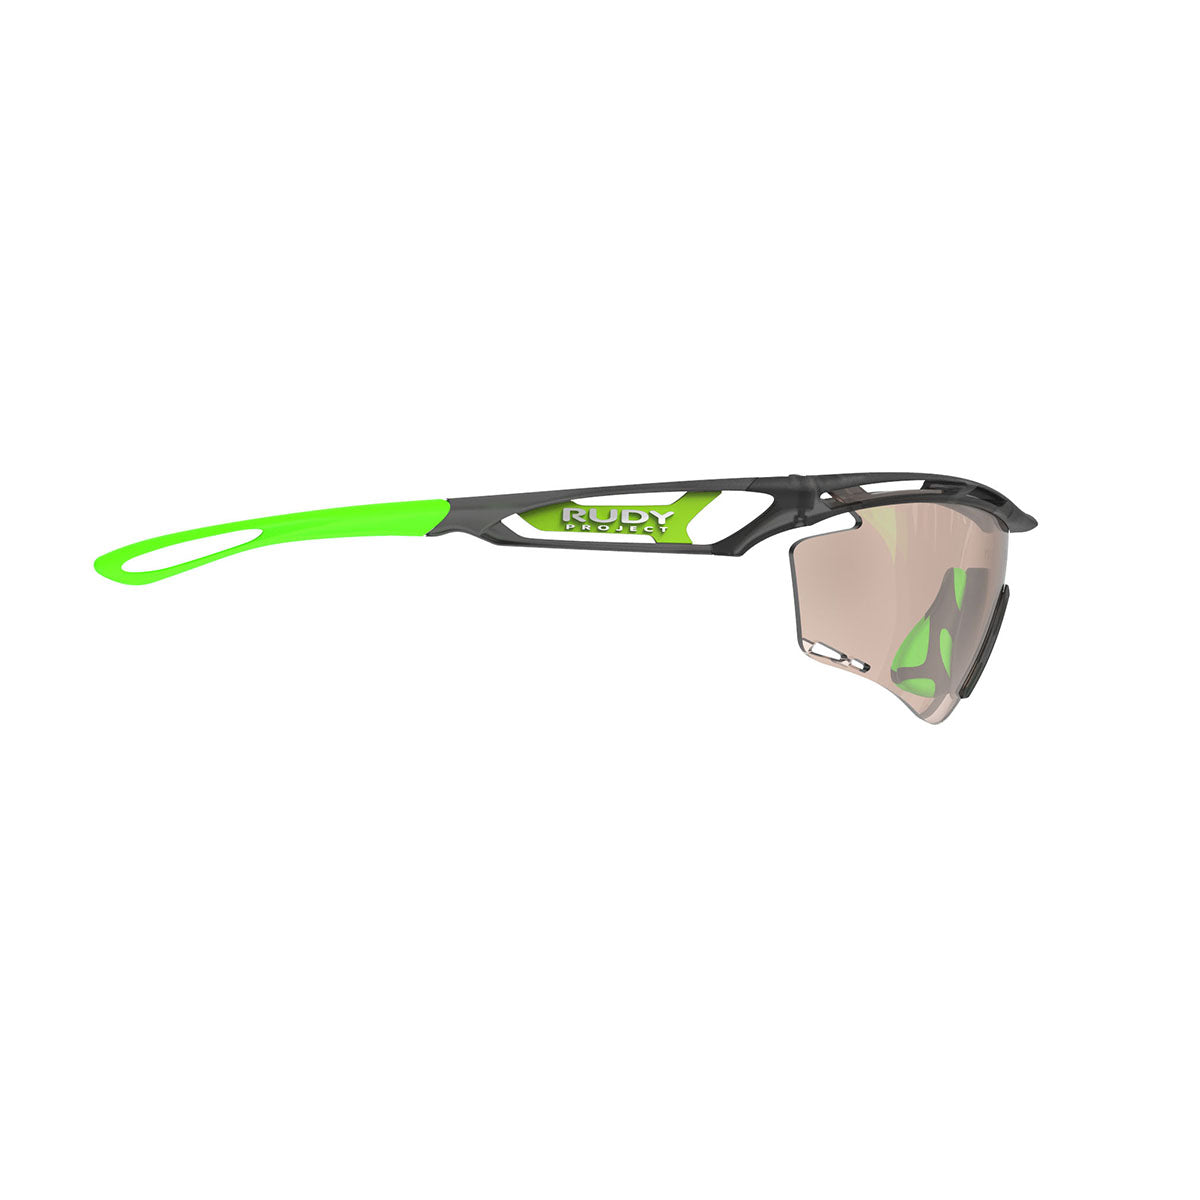 Rudy Project - Tralyx - frame color: Ice Graphite - lens color: ImpactX-2 Photochromic Clear to Laser Brown - photo angle: Side Variant Hover Image